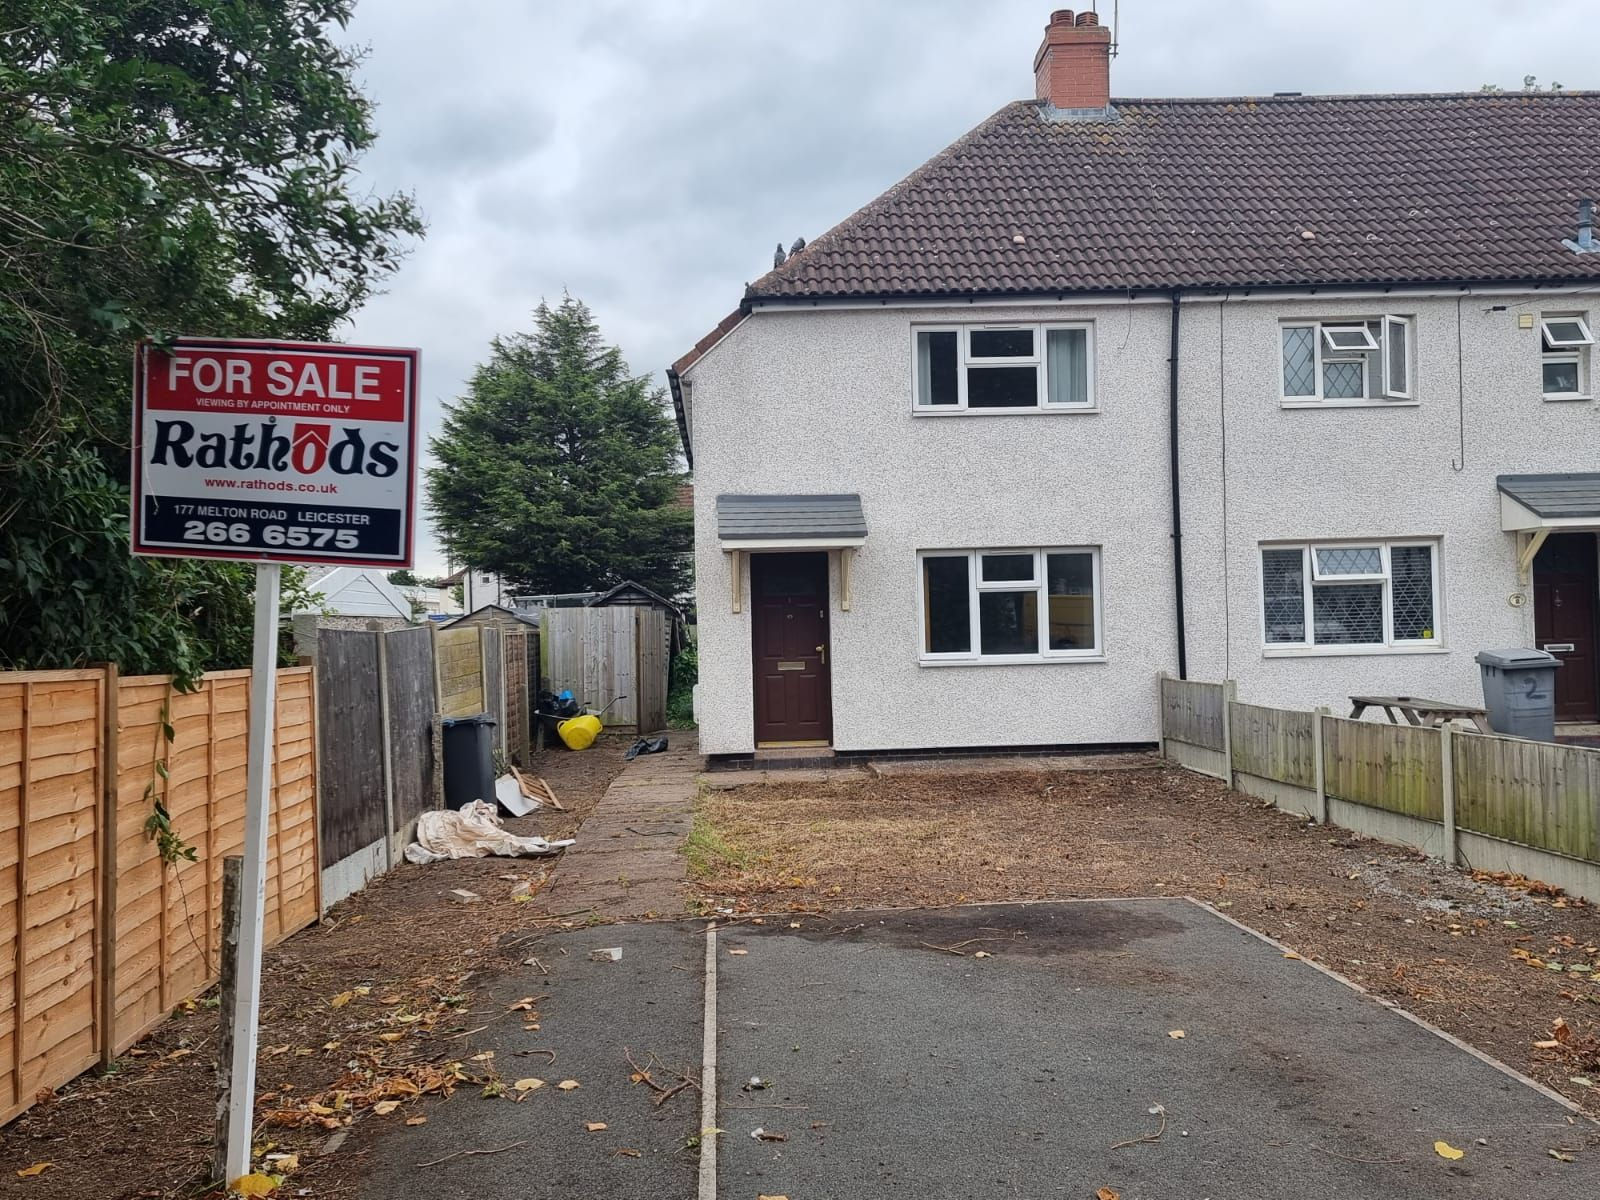 2 bedroom town house For Sale in Leicester - Photograph 1.